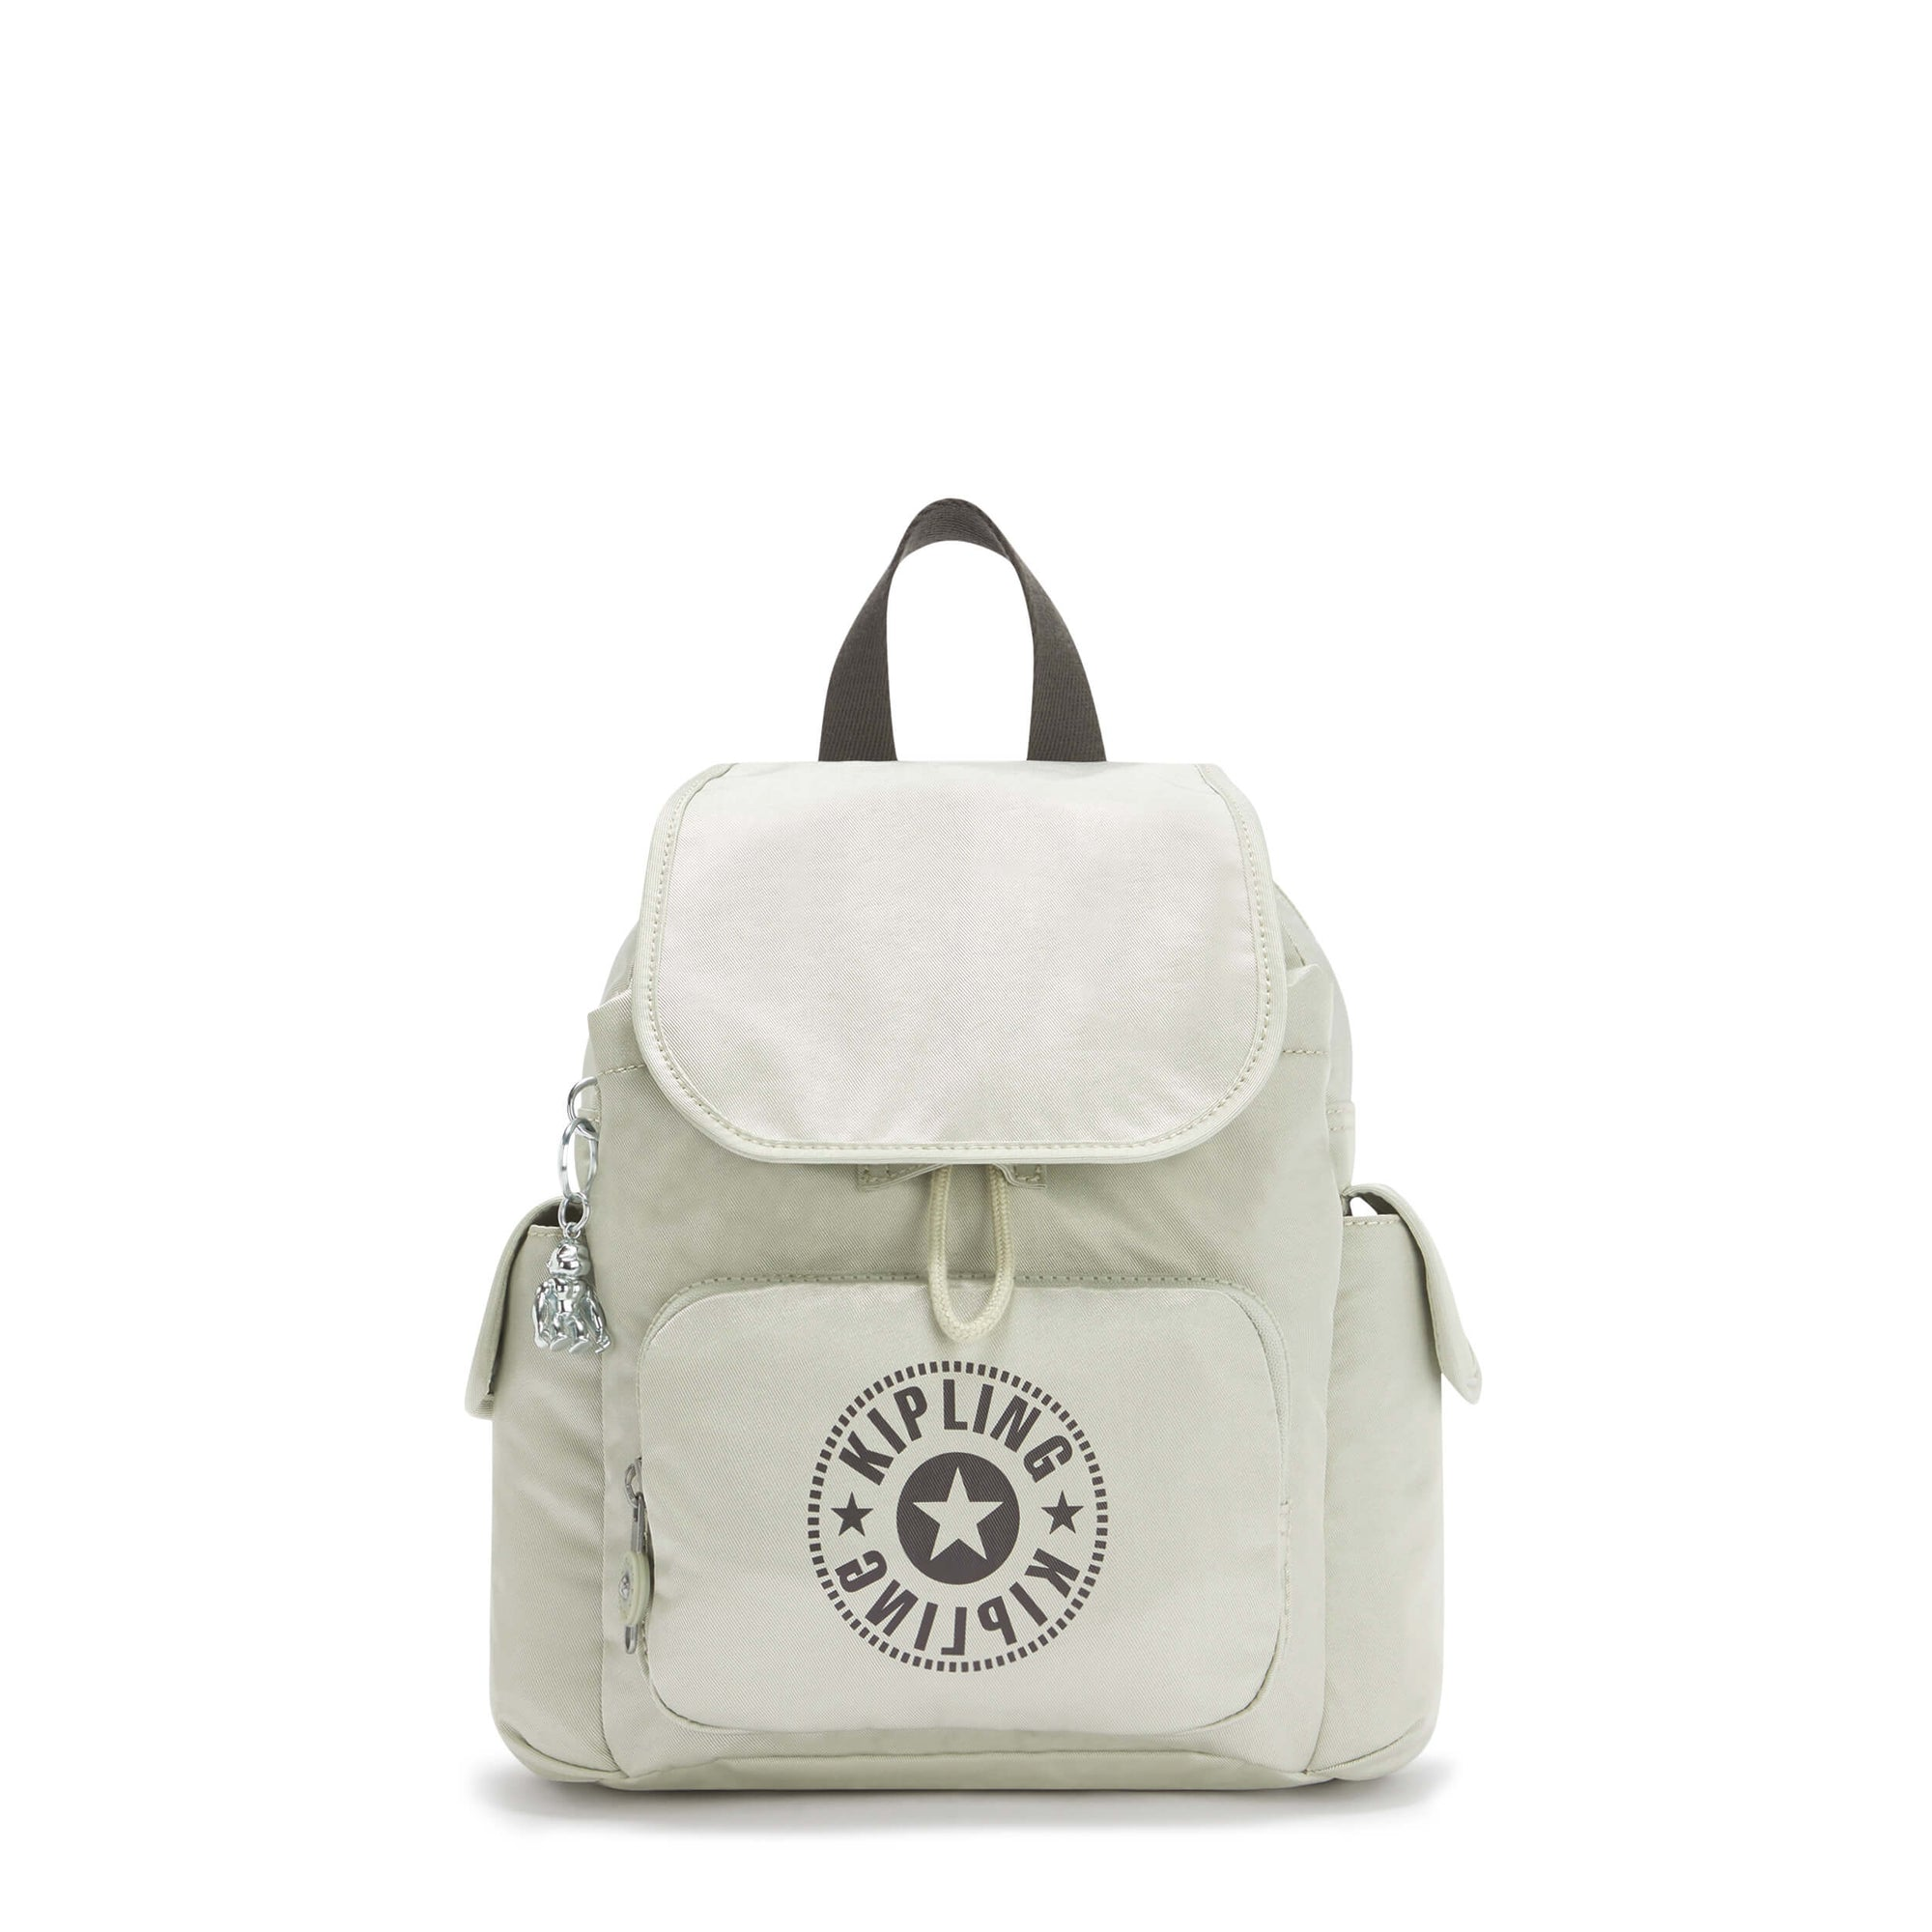 Backpack Kipling City Pack Mini Dynamic Silver KI2671G32